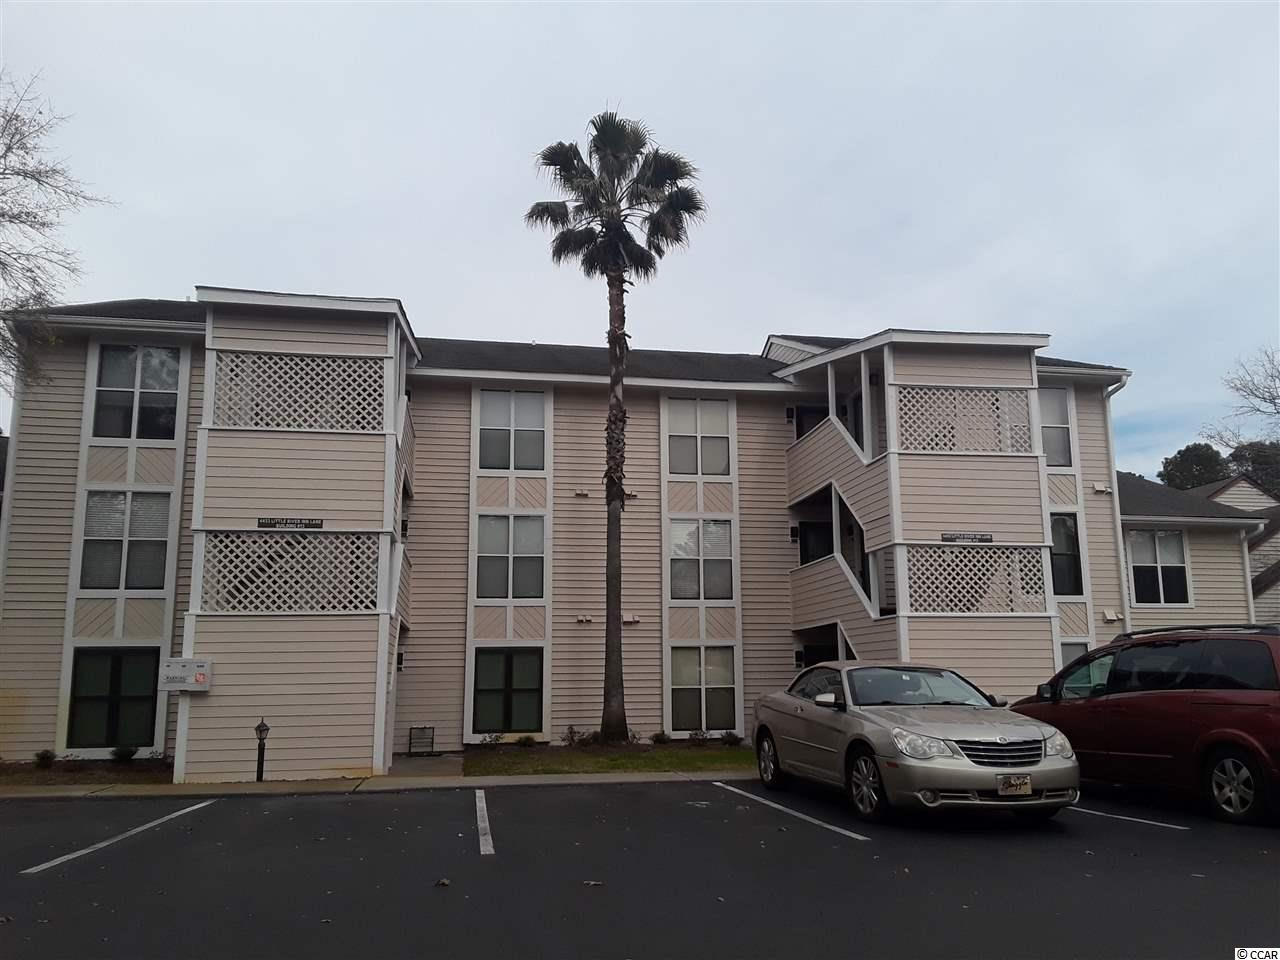 Beautiful 2 bedroom/2 bath lst floor unit overlooking the pool. Community is undergoing complete renovations on exteriors of all buildings. Nicely furnished. New appliances. This home is in excellent condition and is move in ready. Tile in baths and kitchen.